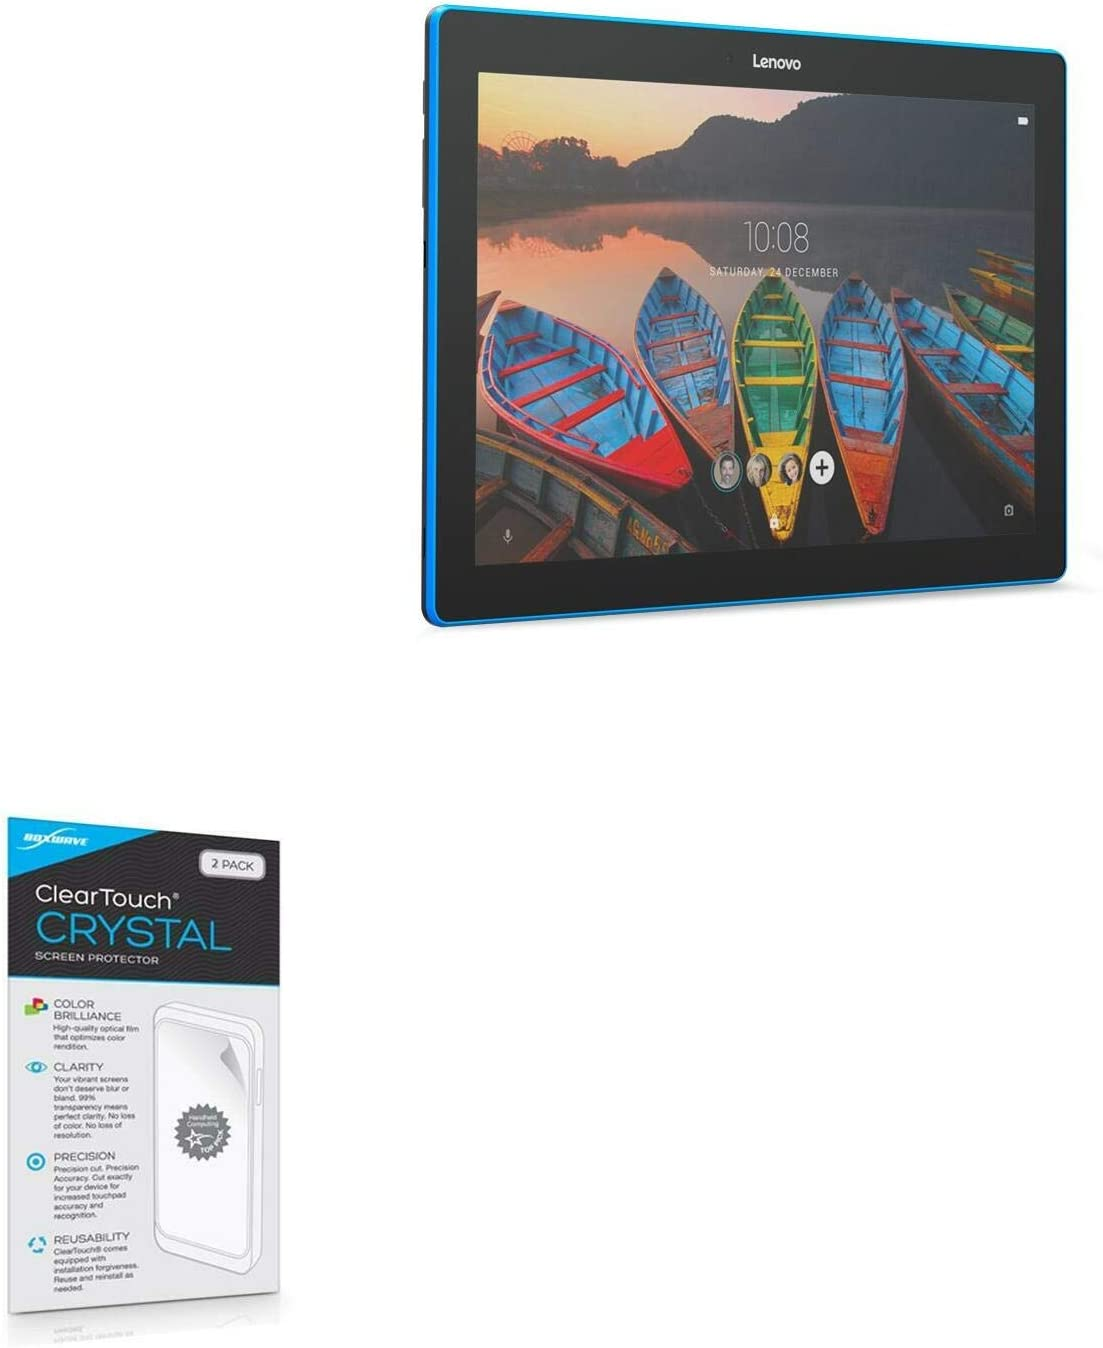 Lenovo TAB 10 TB-X103F Screen Protector, BoxWave [ClearTouch Crystal (2-Pack)] HD Film Skin - Shields from Scratches for Lenovo TAB 10 TB-X103F